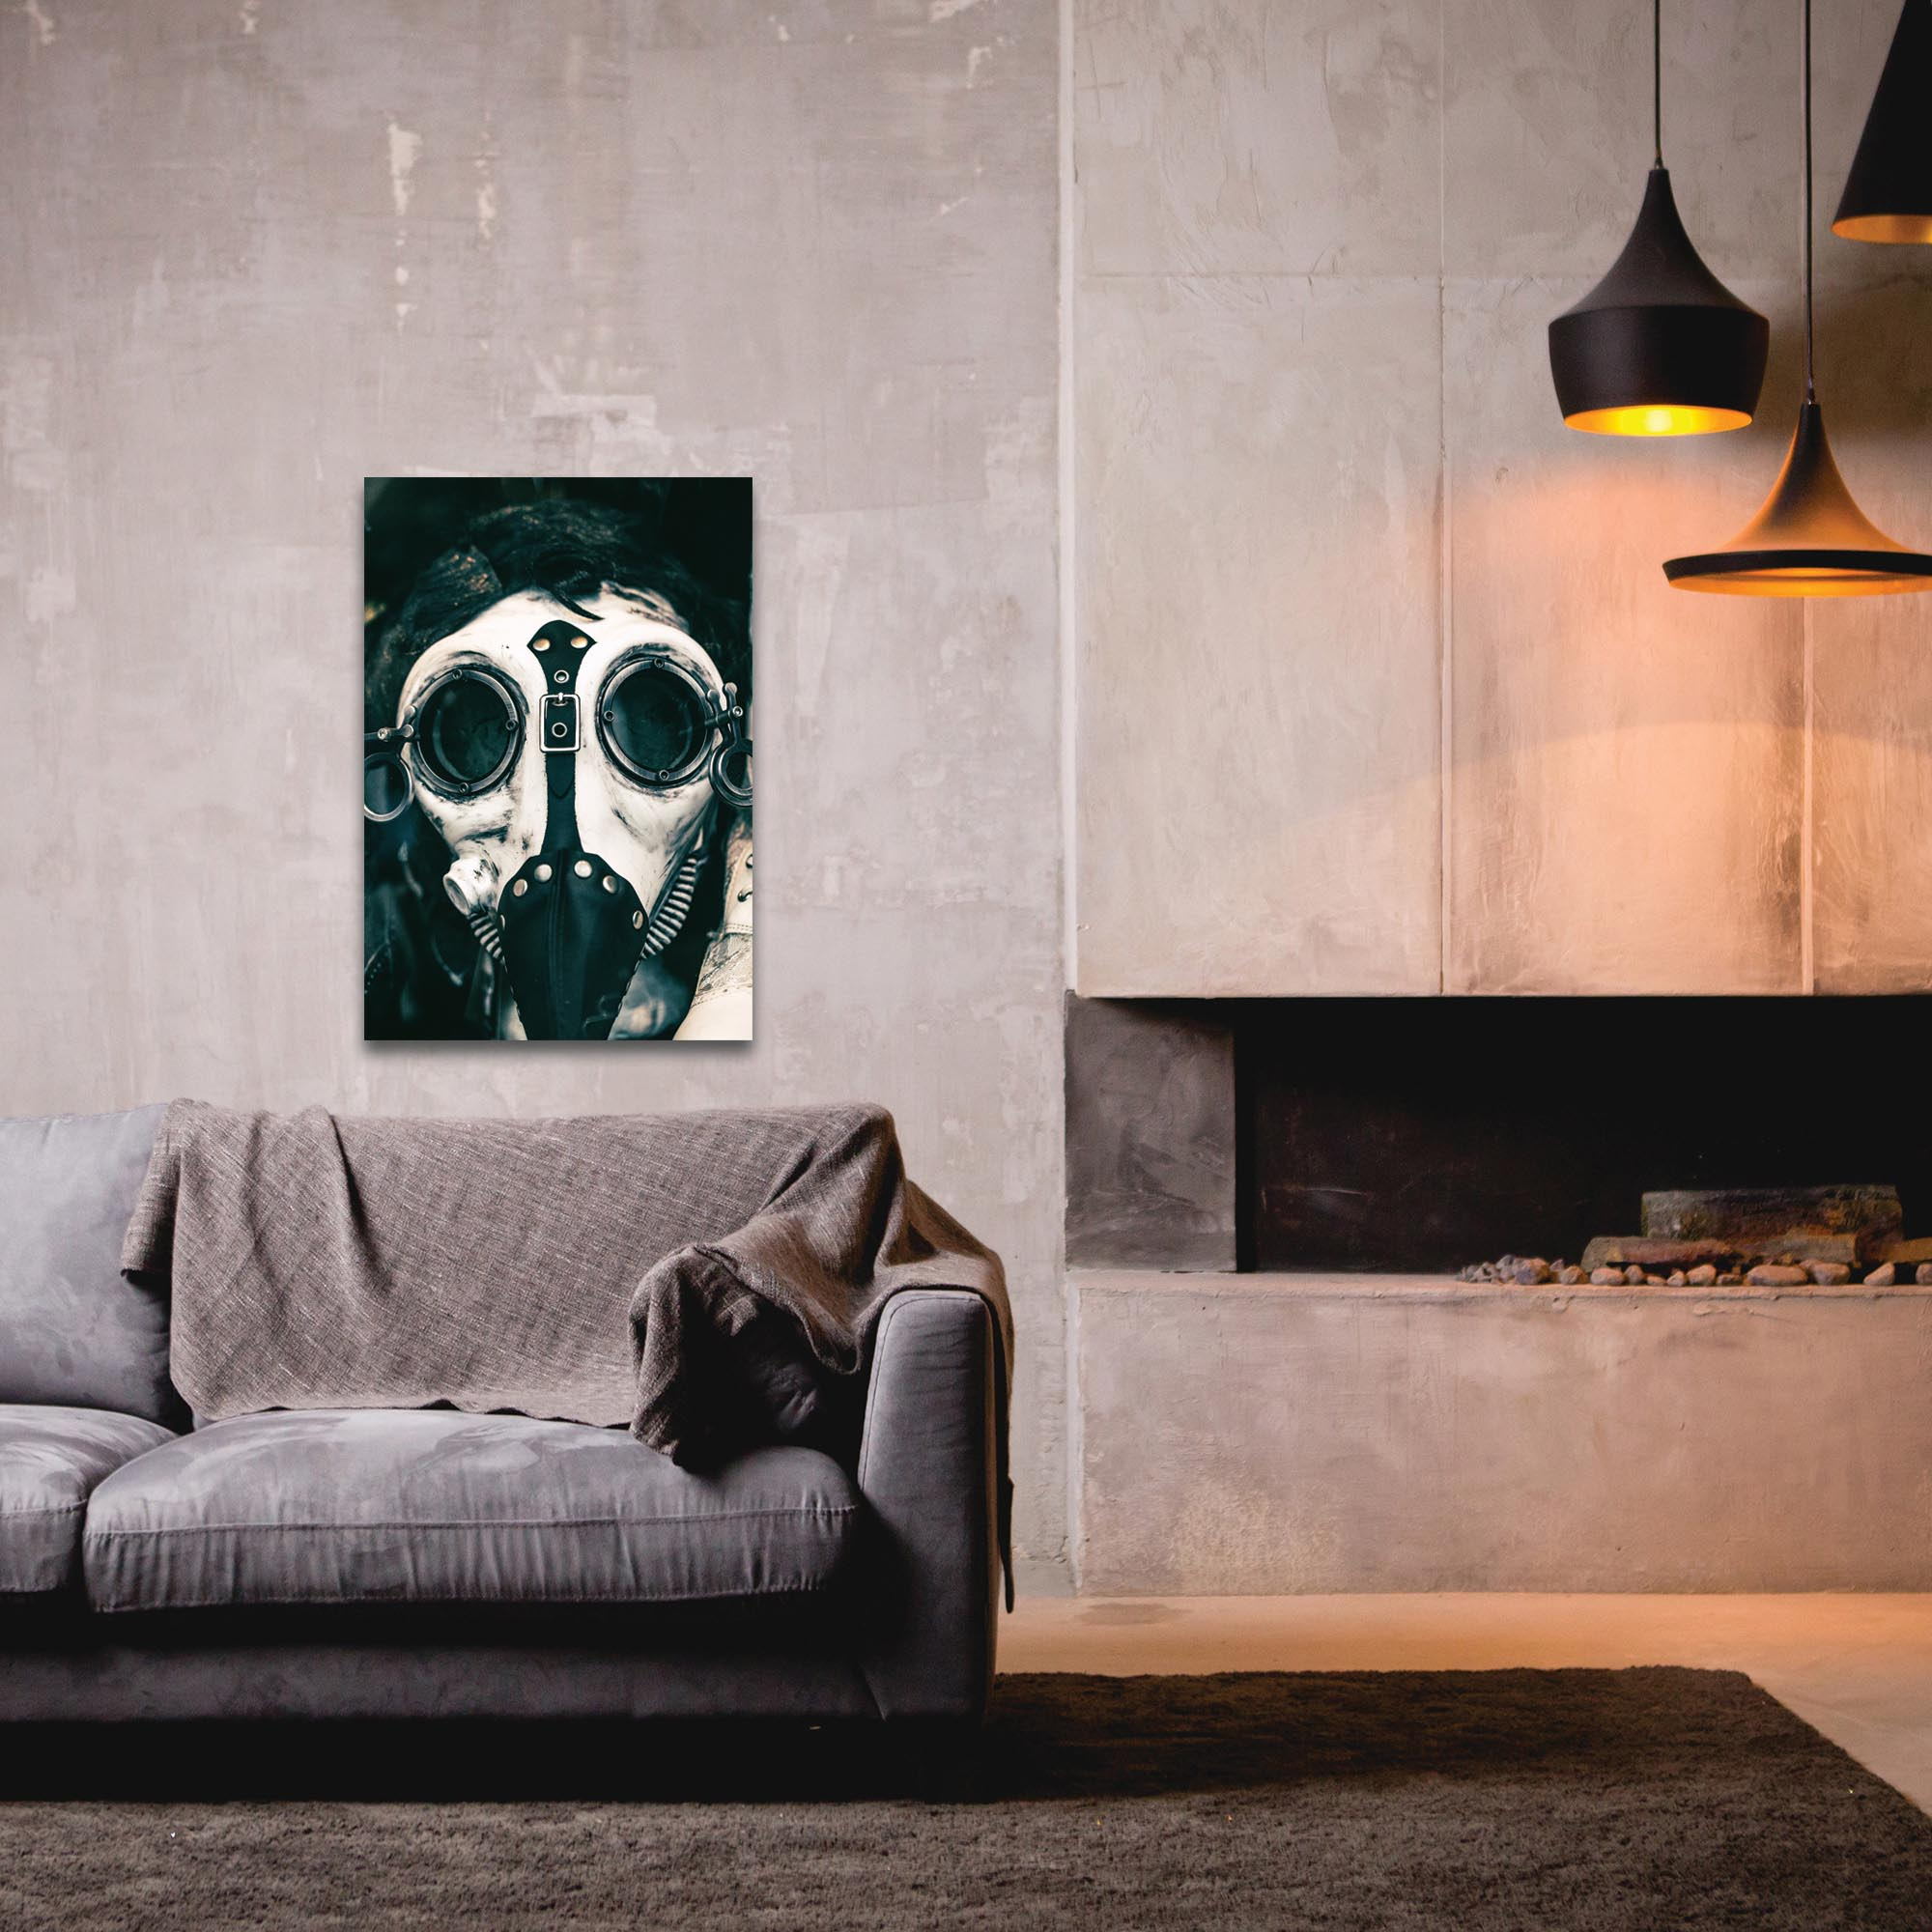 Eclectic Wall Art 'The Mask' - New Orleans Decor on Metal or Plexiglass - Lifestyle View